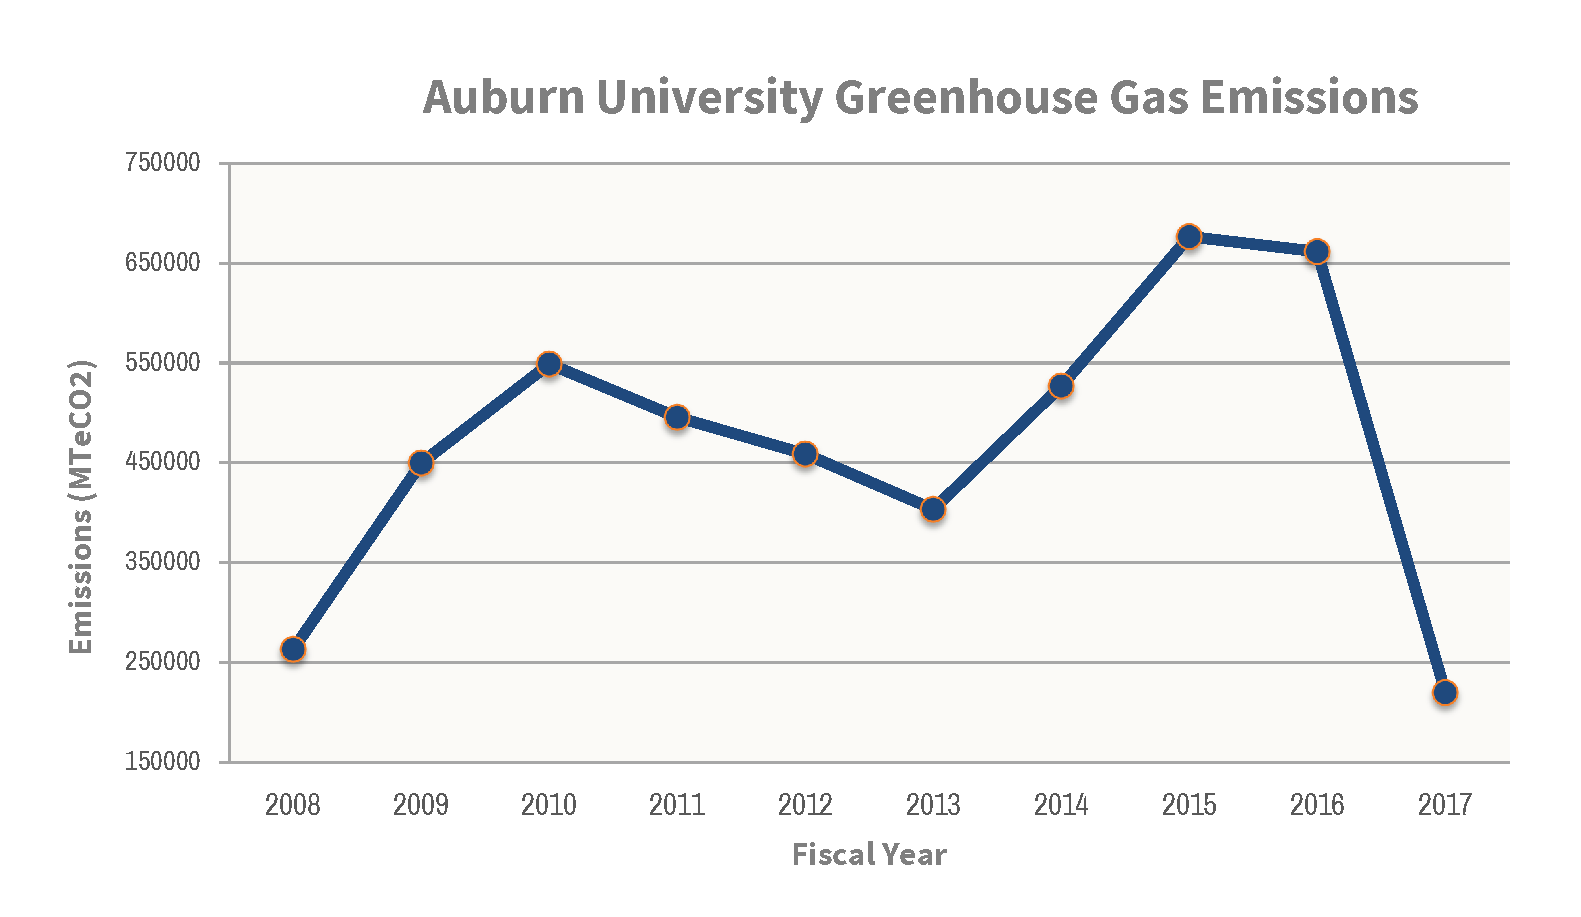 Graphic depicting total greenhouse gas emissions of Auburn University by fiscal year.